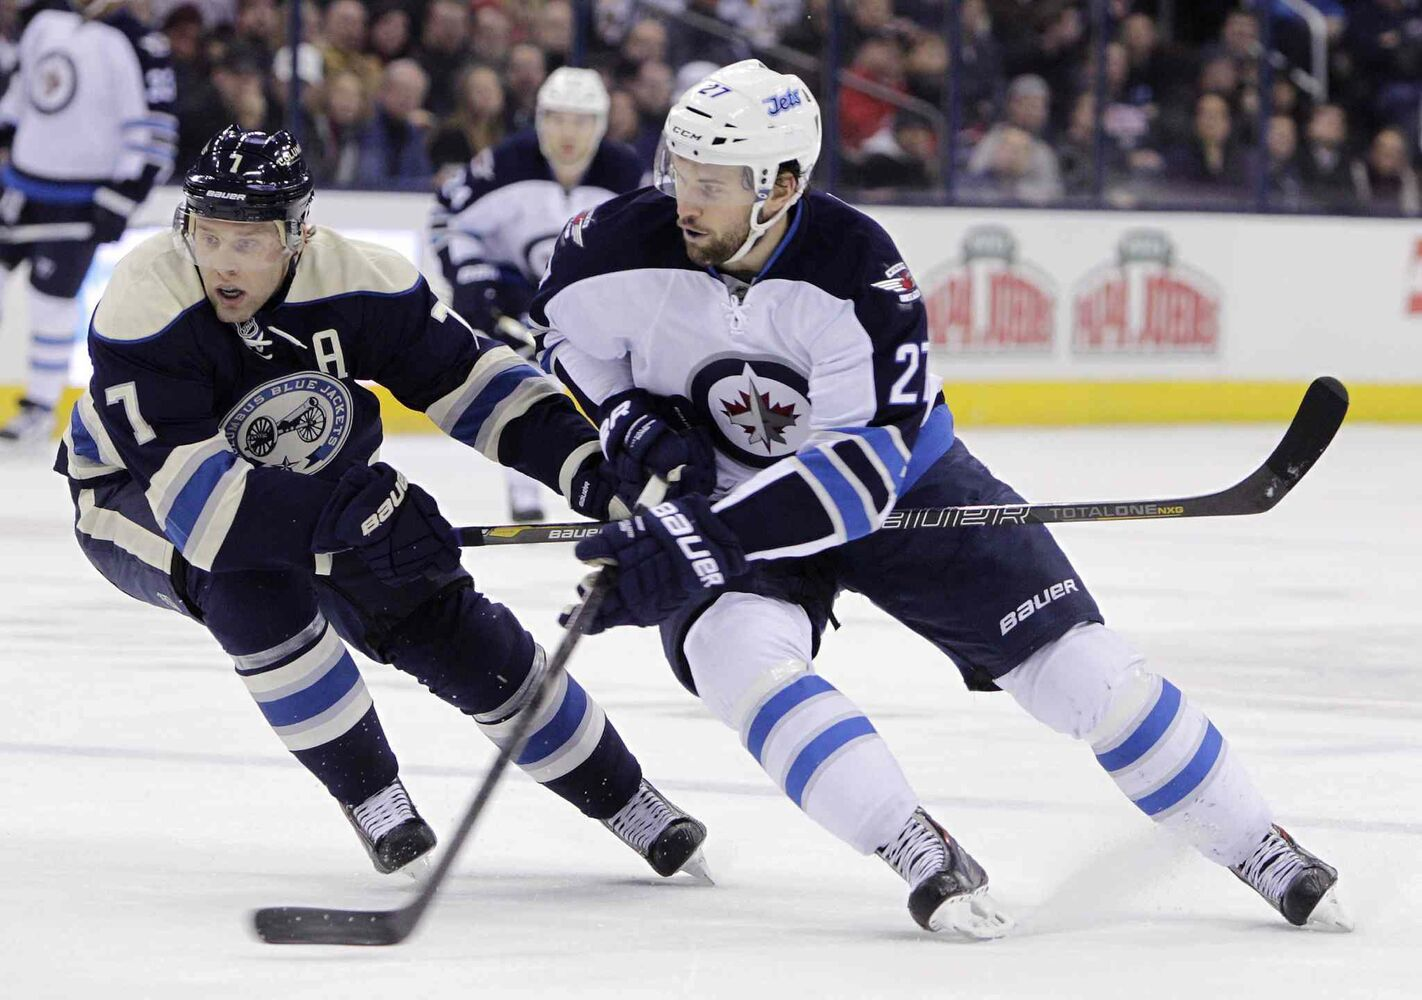 Winnipeg Jets' Eric Tangradi (right) carries the puck across the blue line as Columbus Blue Jackets' Jack Johnson defends during the first period Monday. (Jay LaPrete / The Associated Press)